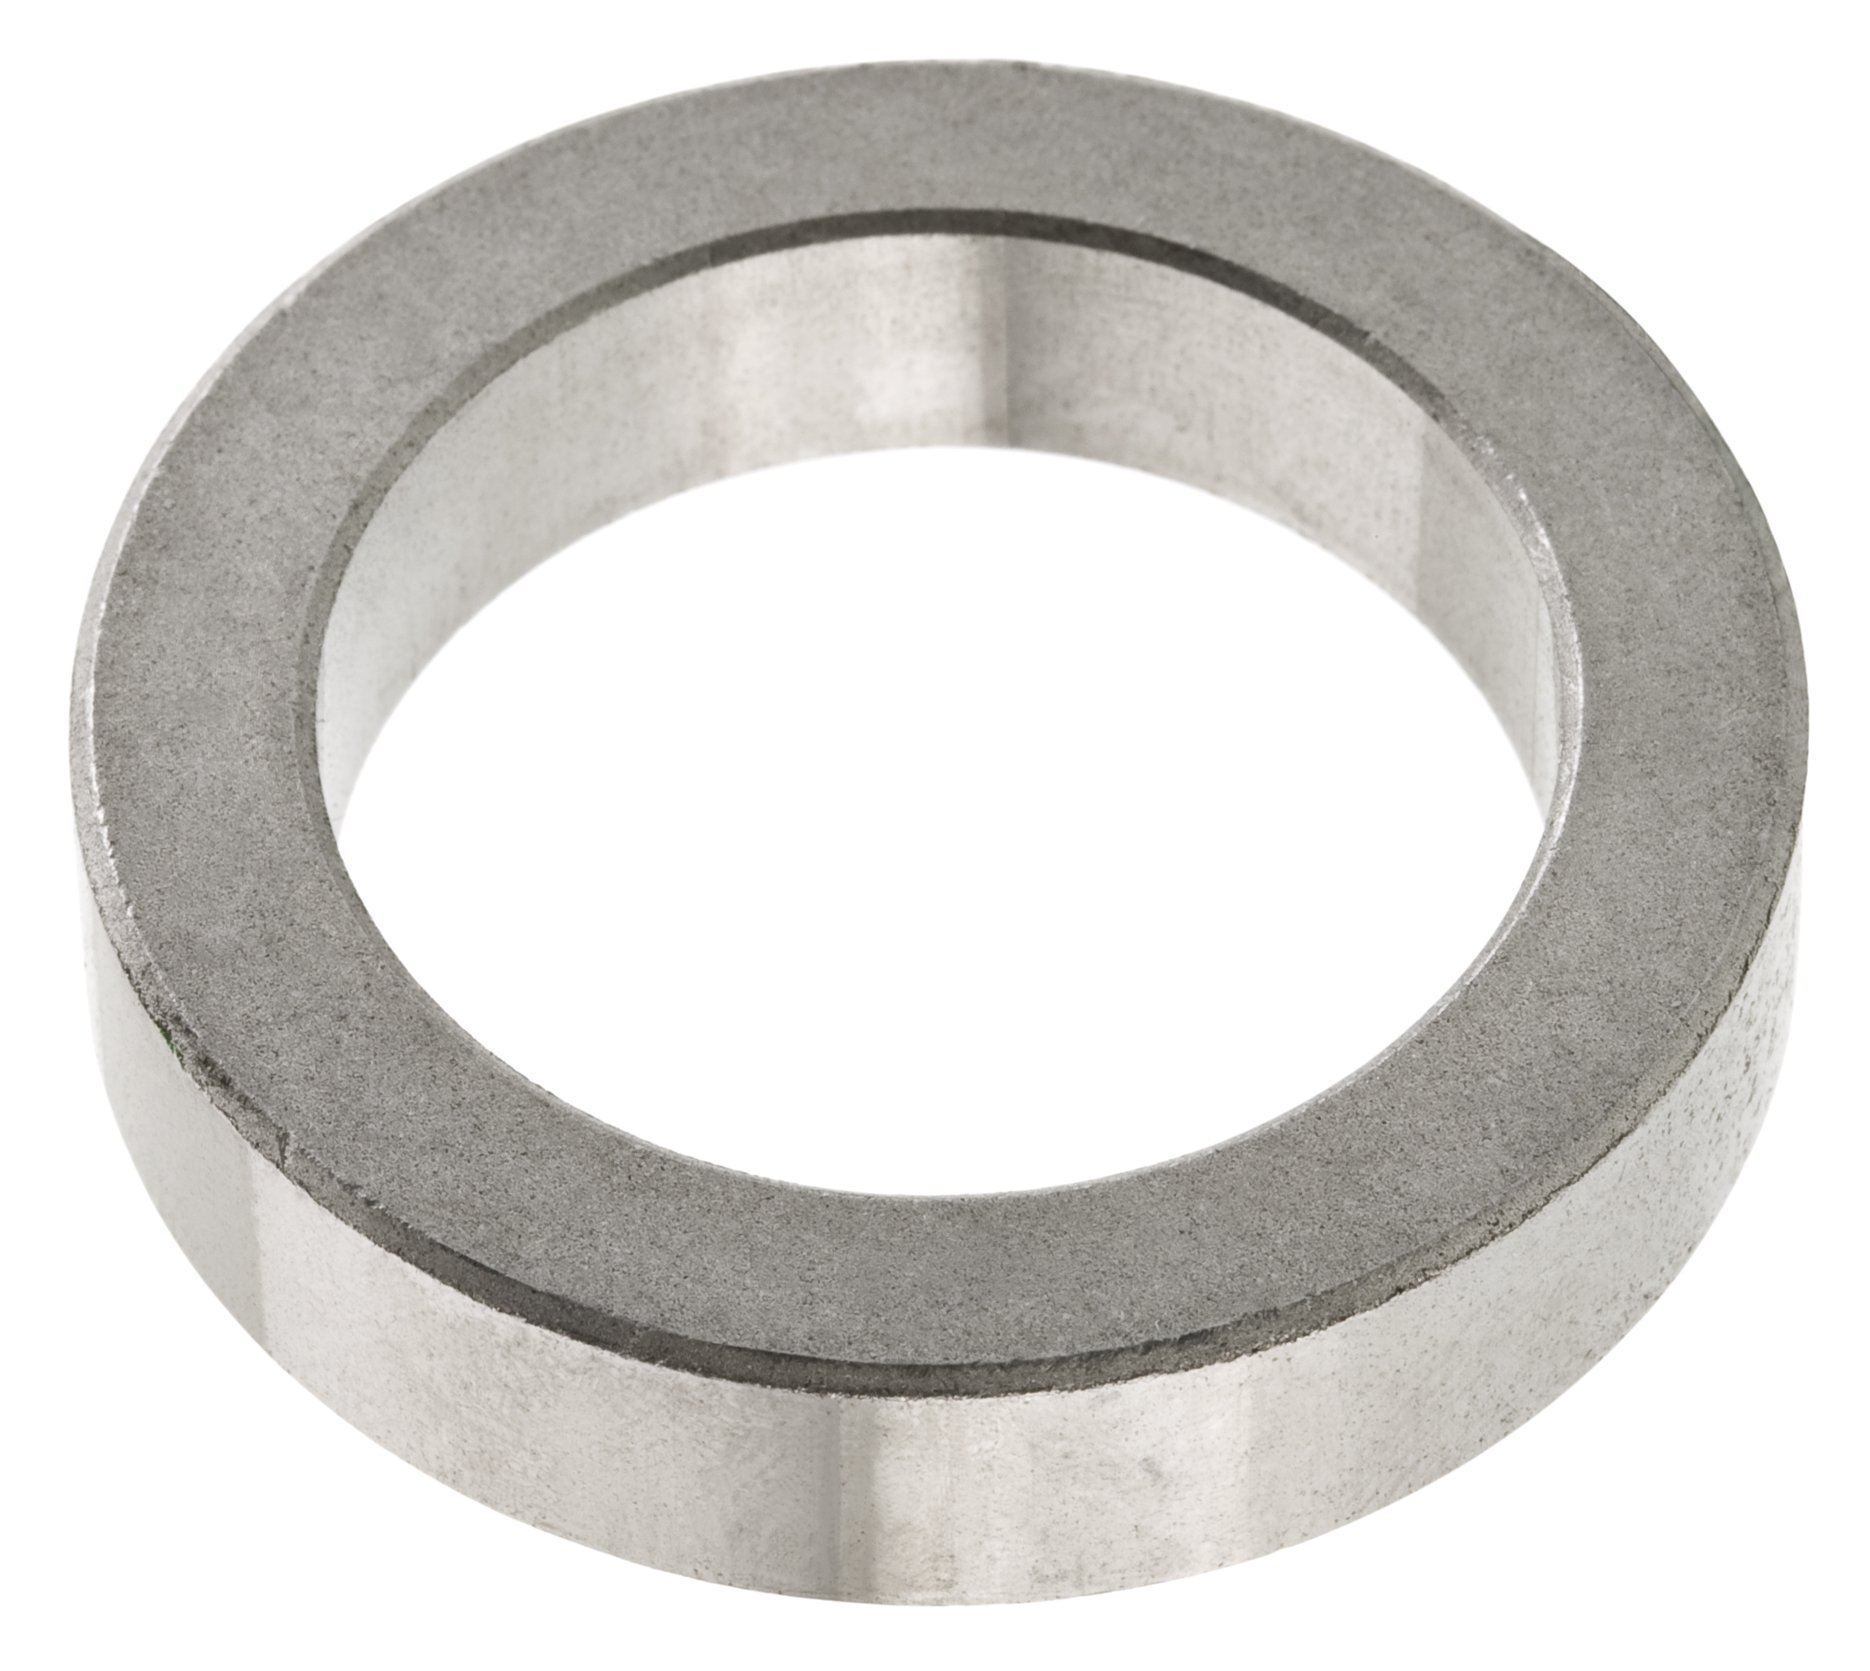 Woodstock W1175 1-1/4 by 1-3/4 by 3/8-Inch Spacer